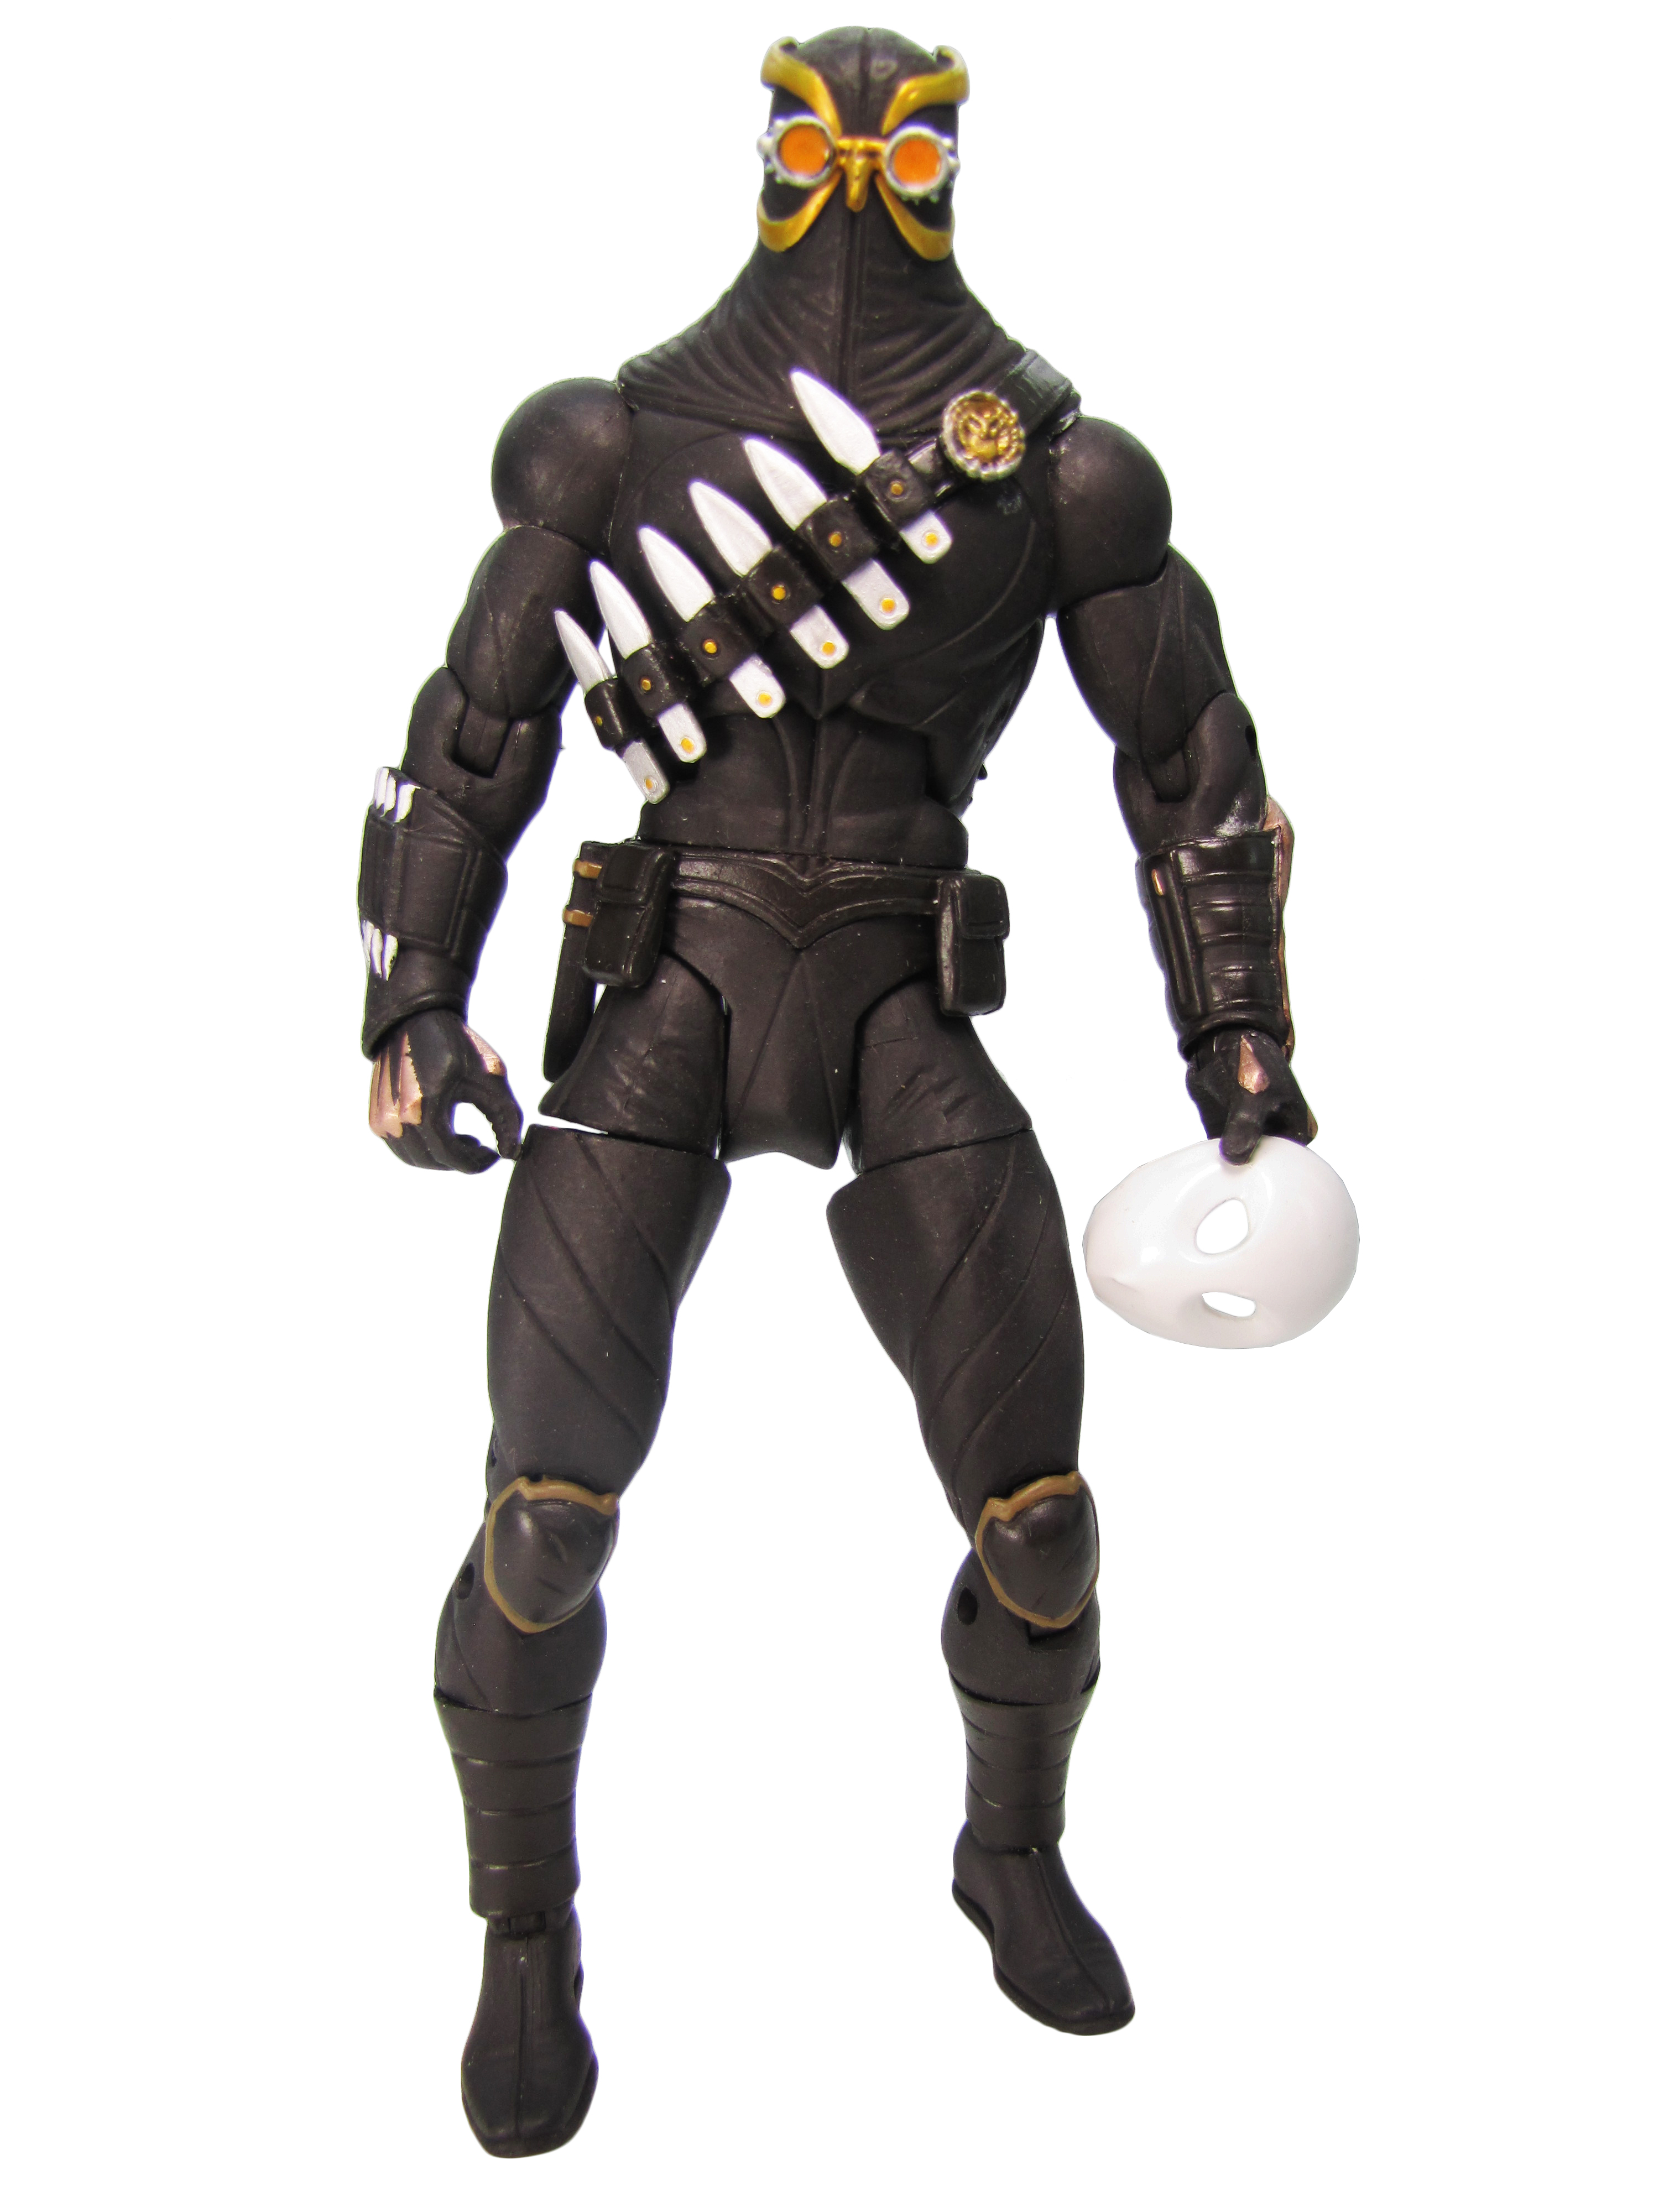 2014 DC Collectibles Designer Series Greg Capullo's Batman TALON Mint